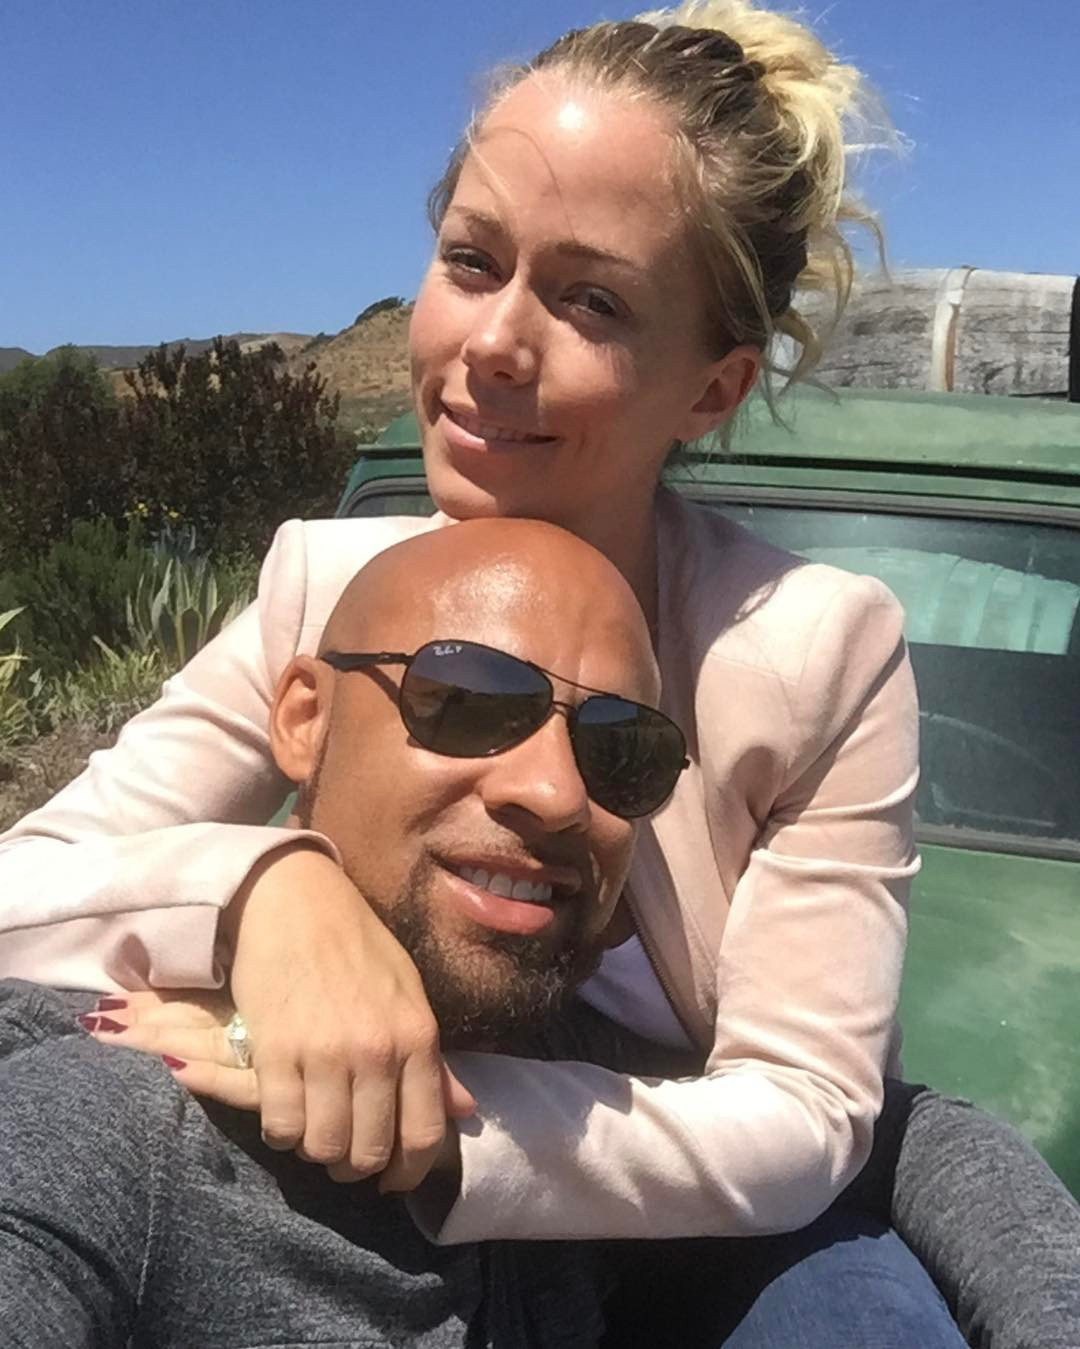 6. Kendra Wilkinson & Hank Baskett